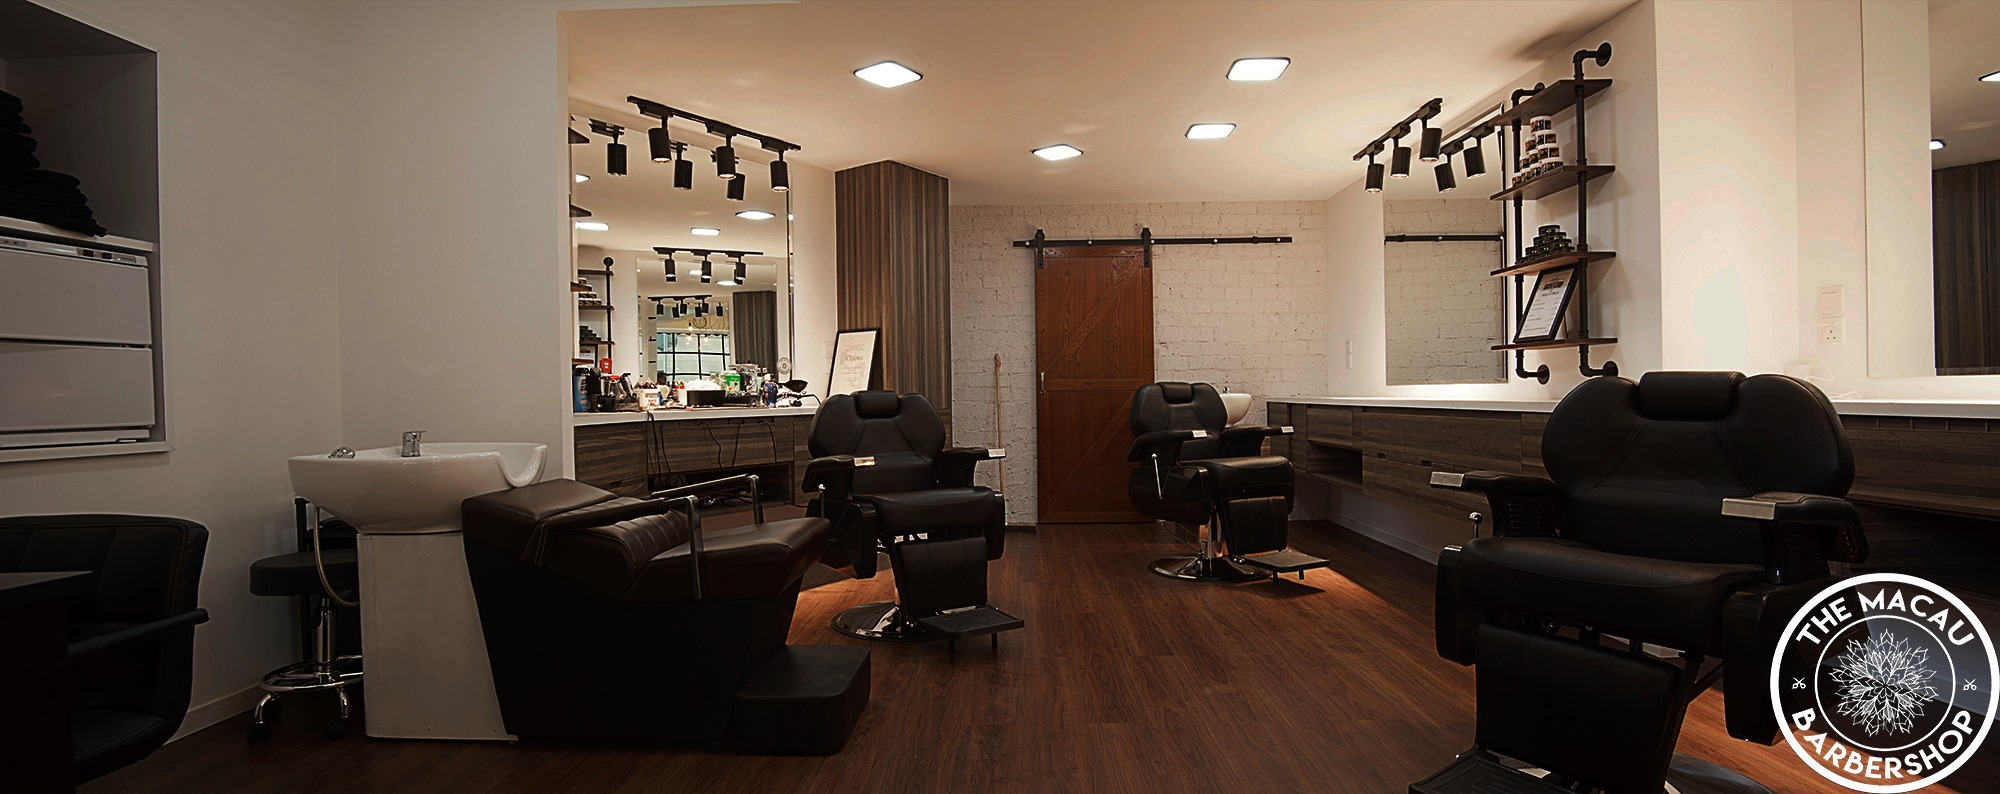 Barbershop Photo of the Space